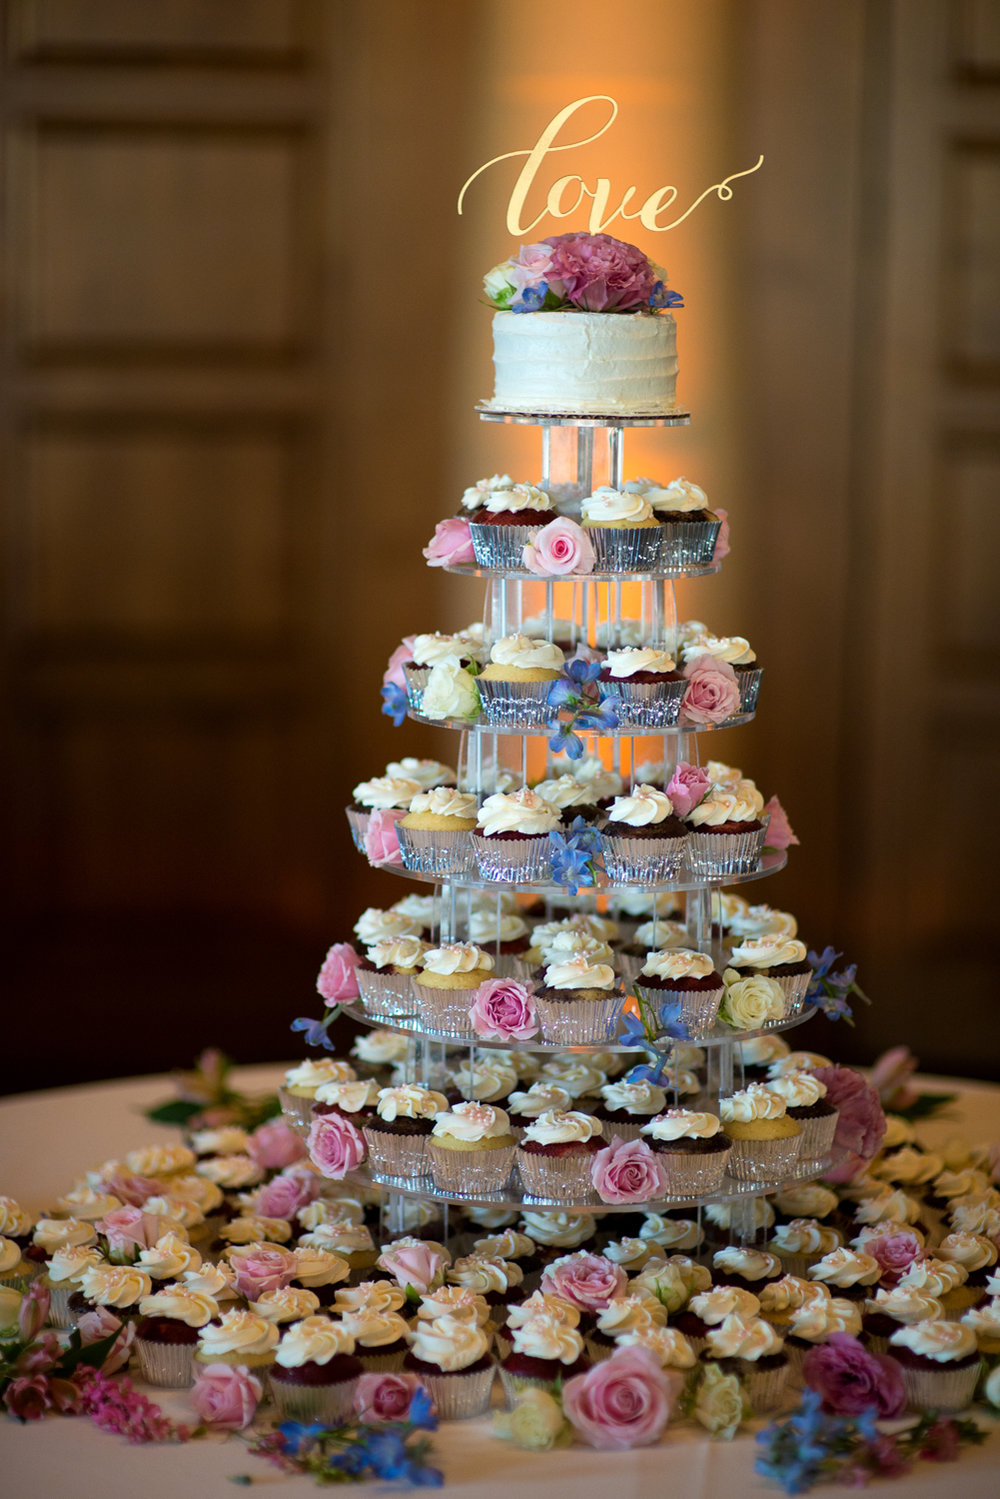 Amazing floral cupcake tower wedding cake!